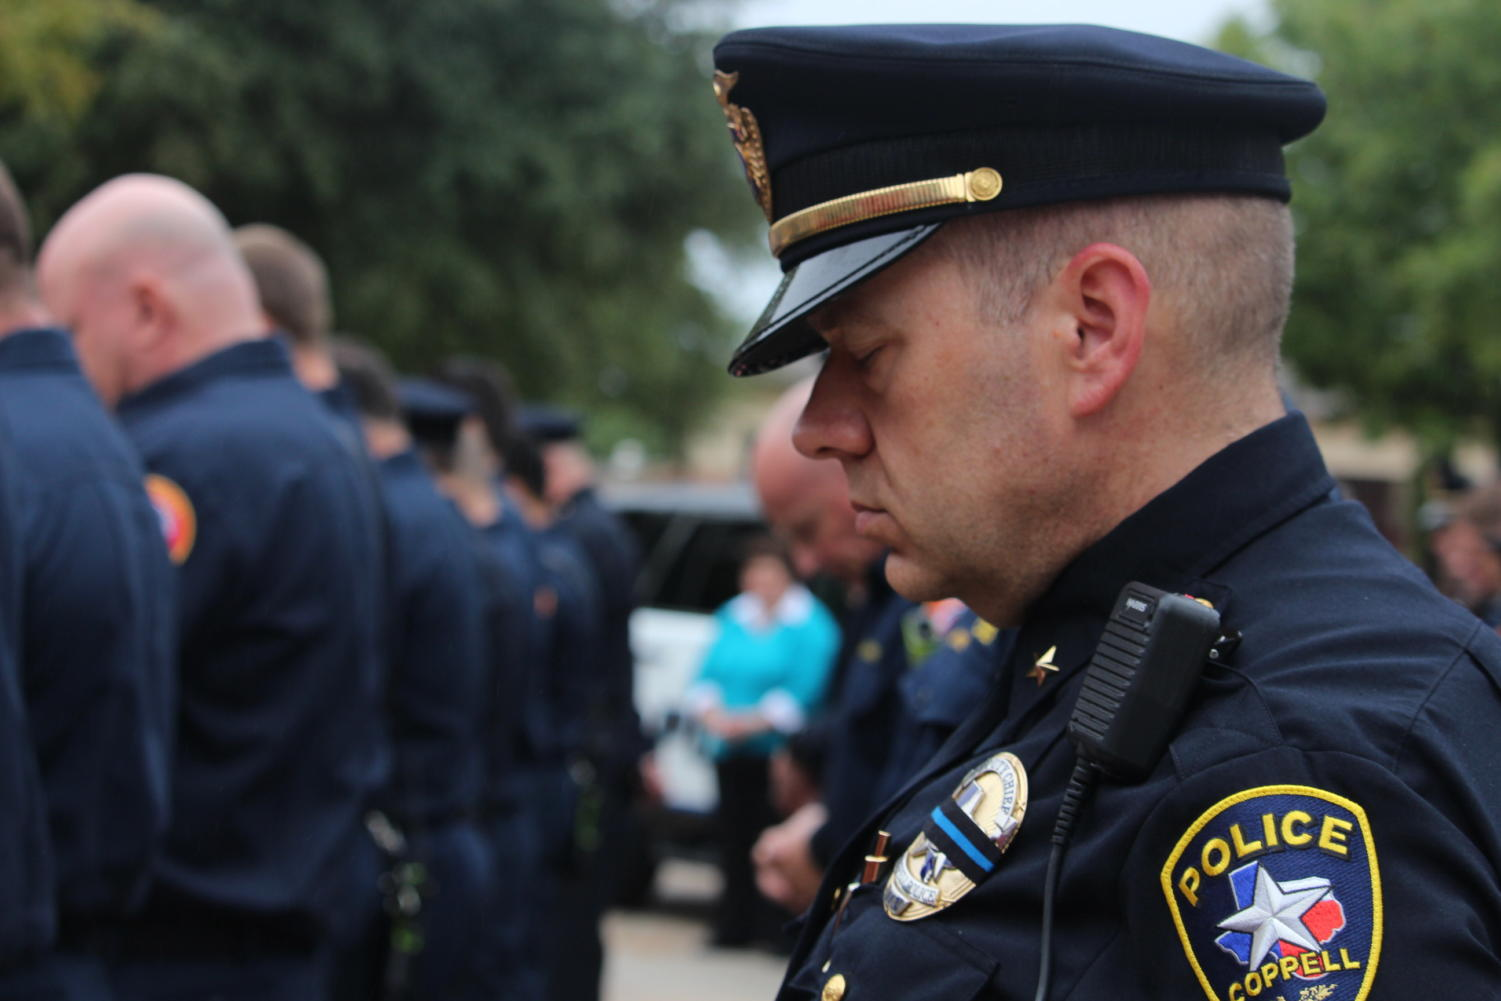 During the Patriot Day ceremony on the morning of Sept. 11, Coppell Deputy Chief Jim Cook bows his head in prayer with his fellow officers before Coppell Town Center Hall. In honor of the lives of those lost 17 years ago, a moment of silence is taken by the attendees to commemorate the loss of the victims and the bravery shown in the last moments of their lives during the 9/11 terrorist attacks.